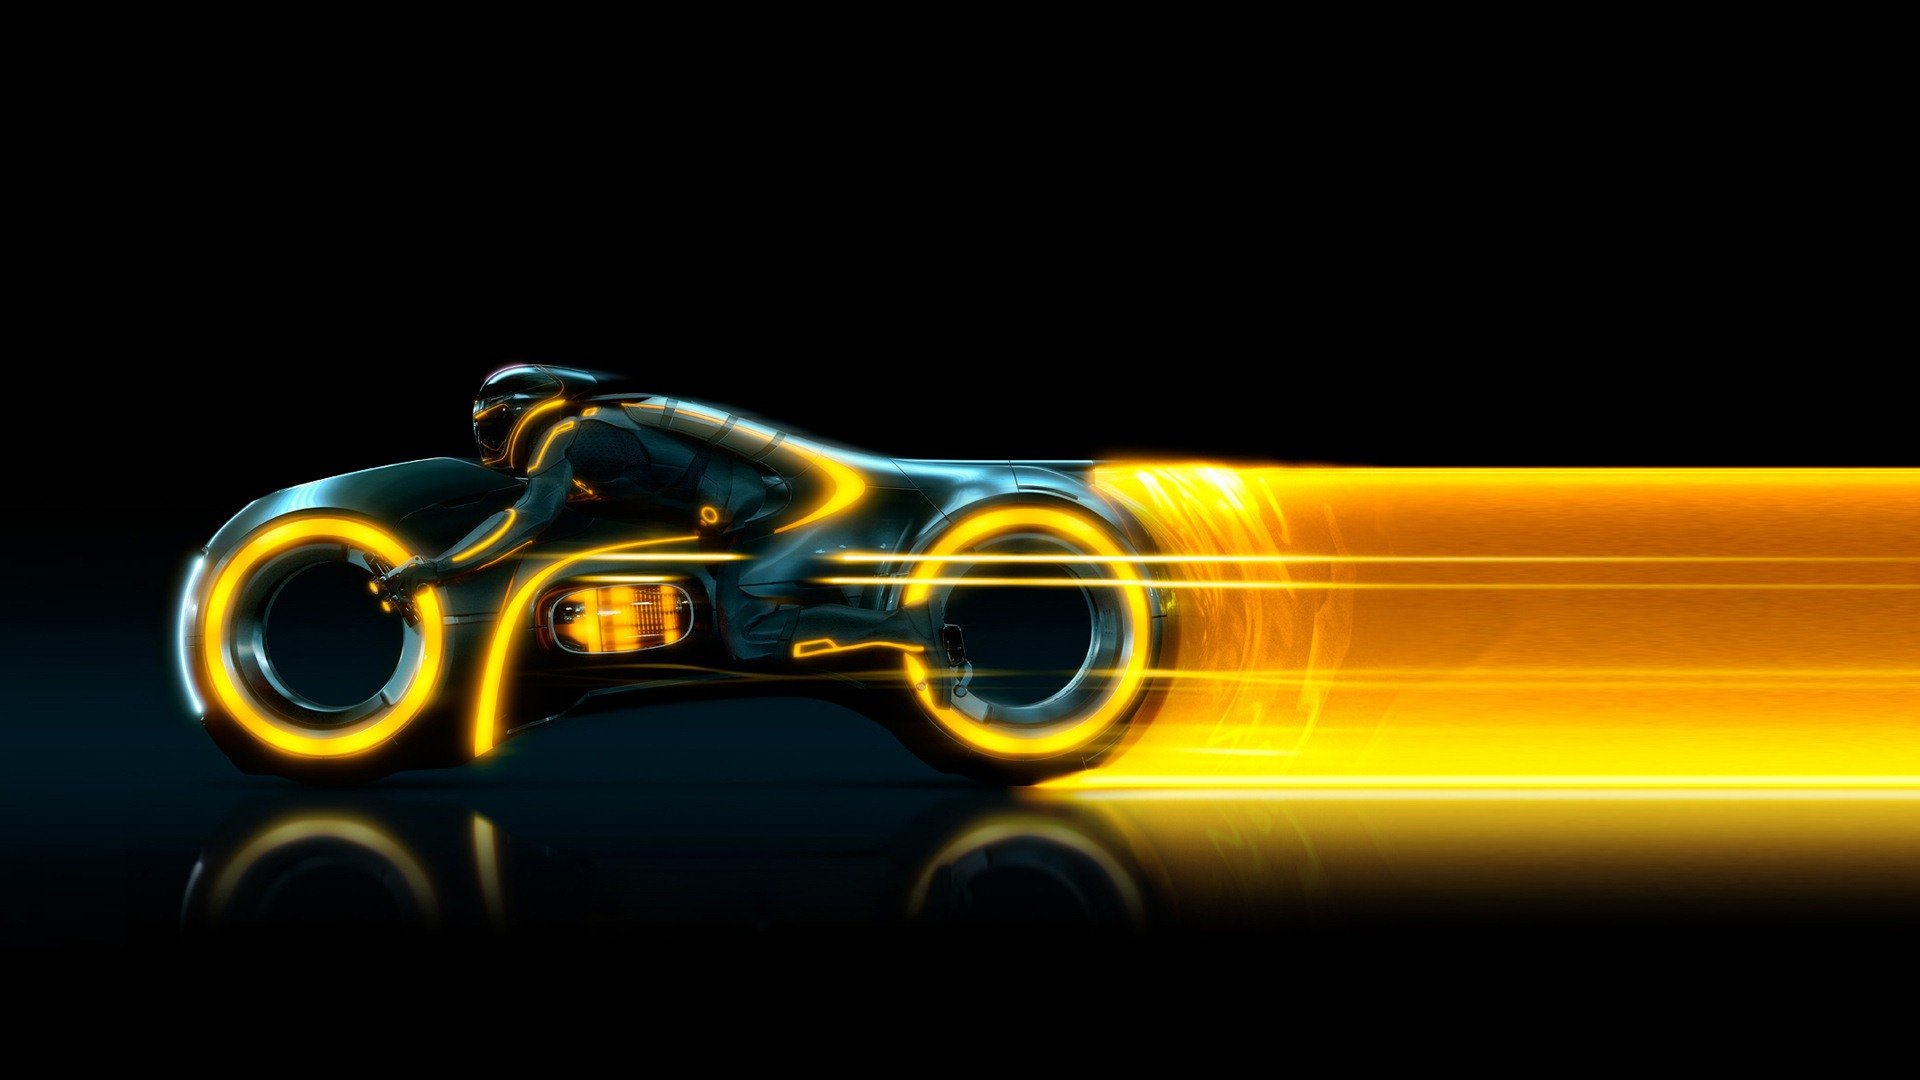 Tron Hd Wallpapers 1080p Wallpapersafari